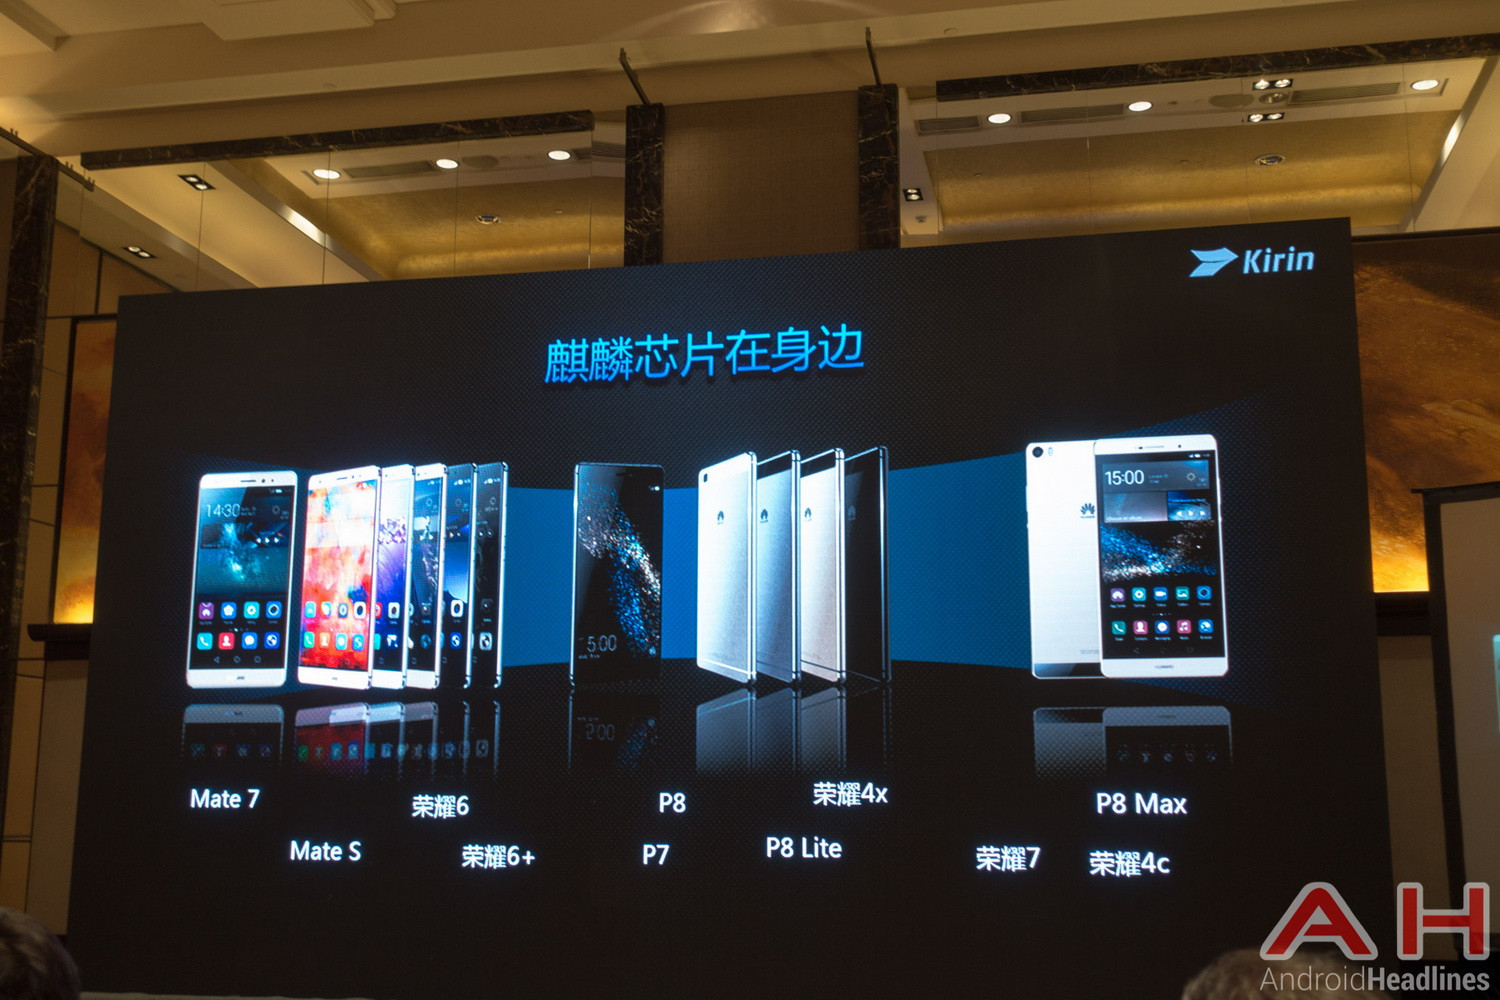 Huawei reveals HiSilicon Kirin 950 chipset